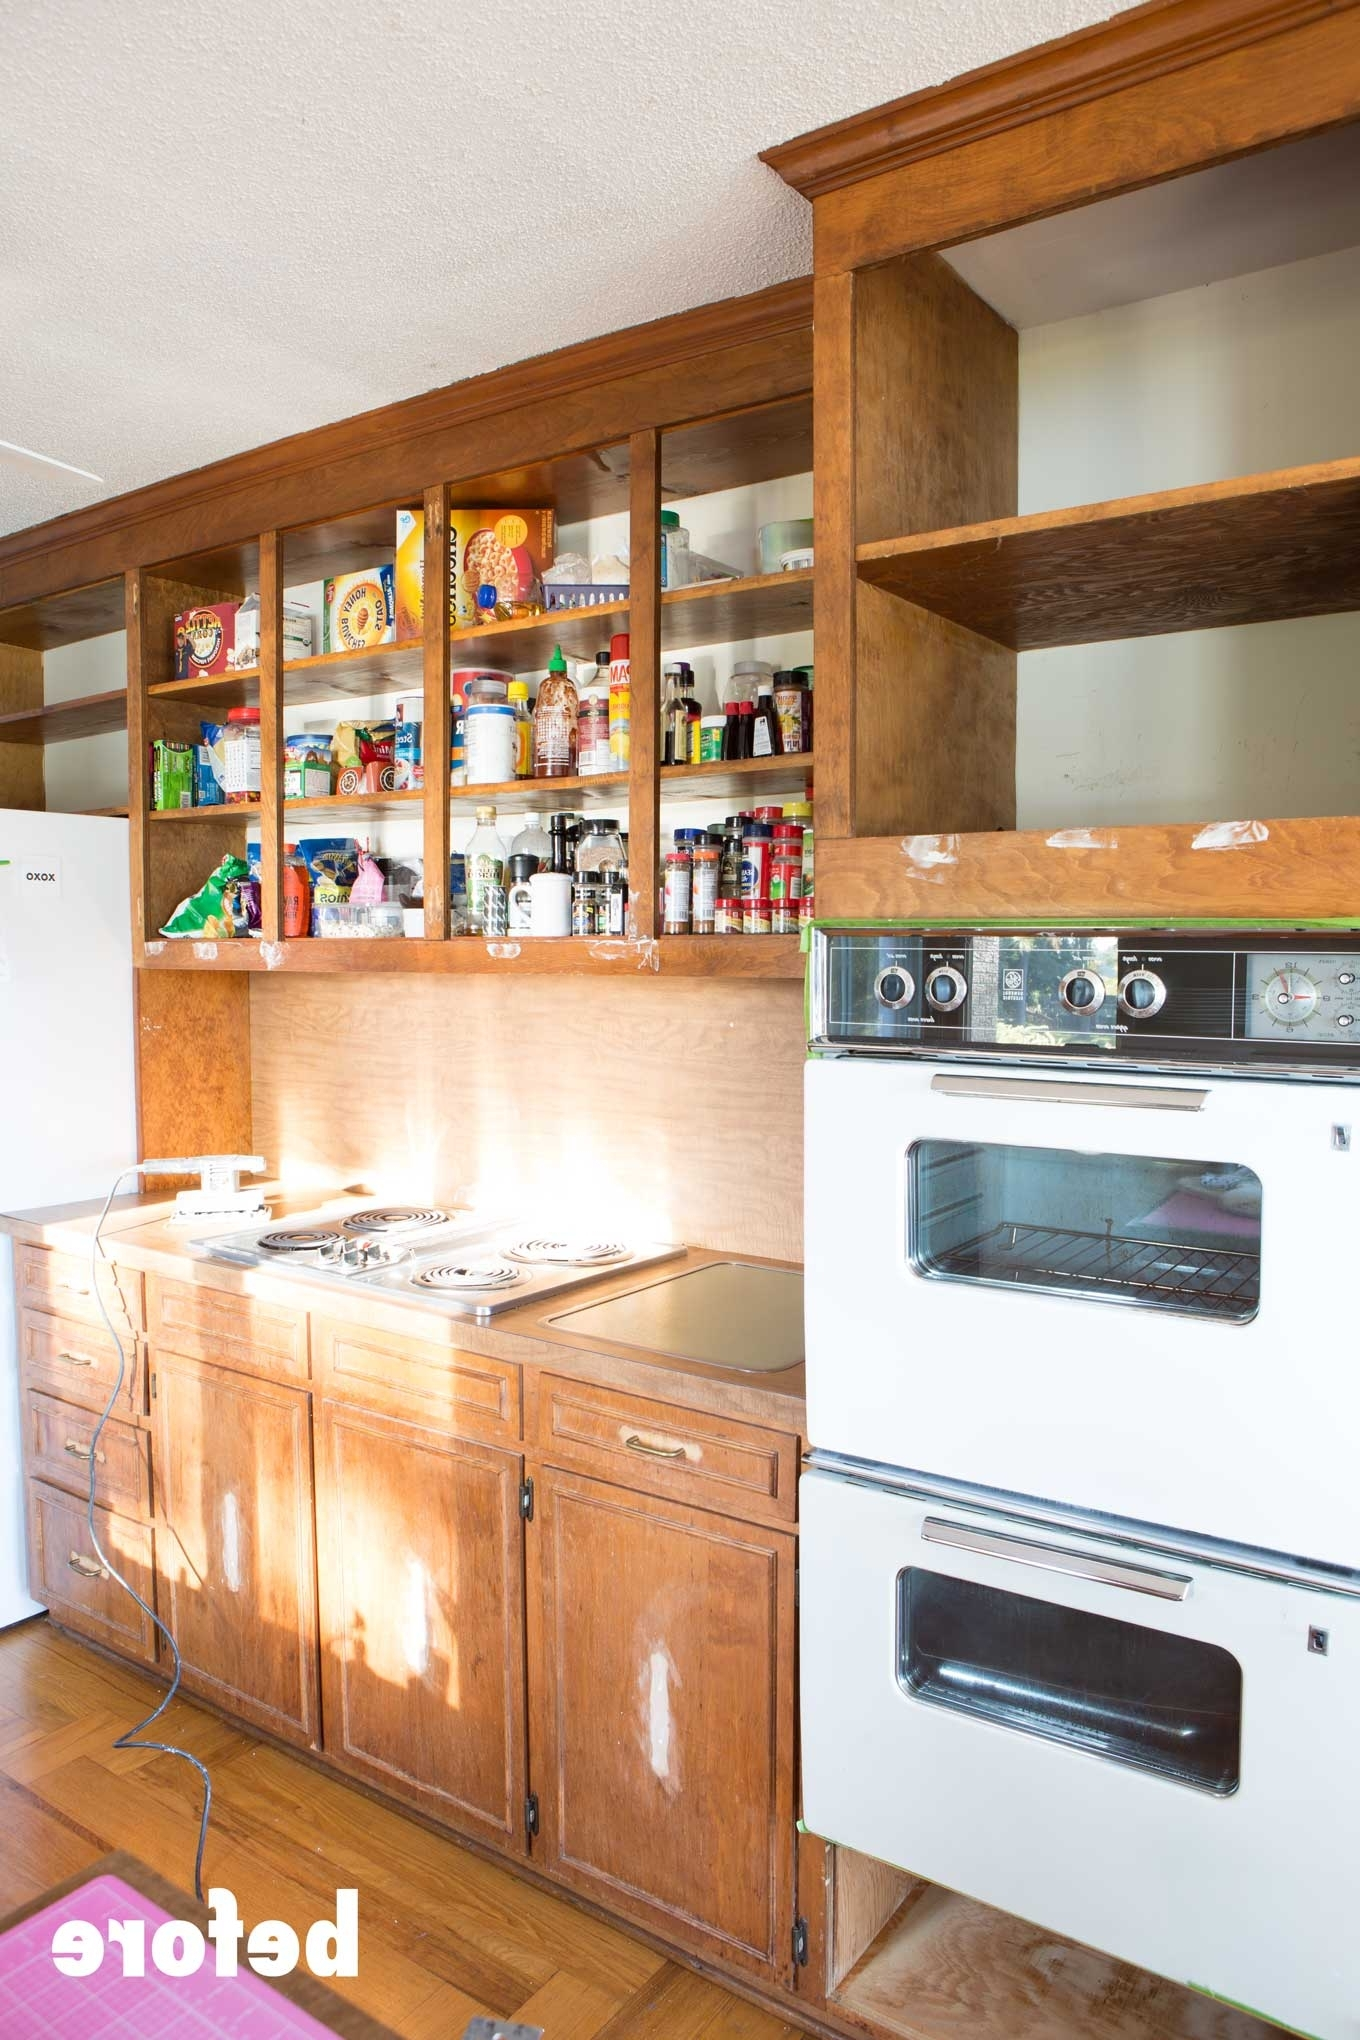 Recent Free Cupboards Pertaining To Kitchen Cabinets : Refurbish Kitchen Cabinets Can You Paint (View 13 of 15)